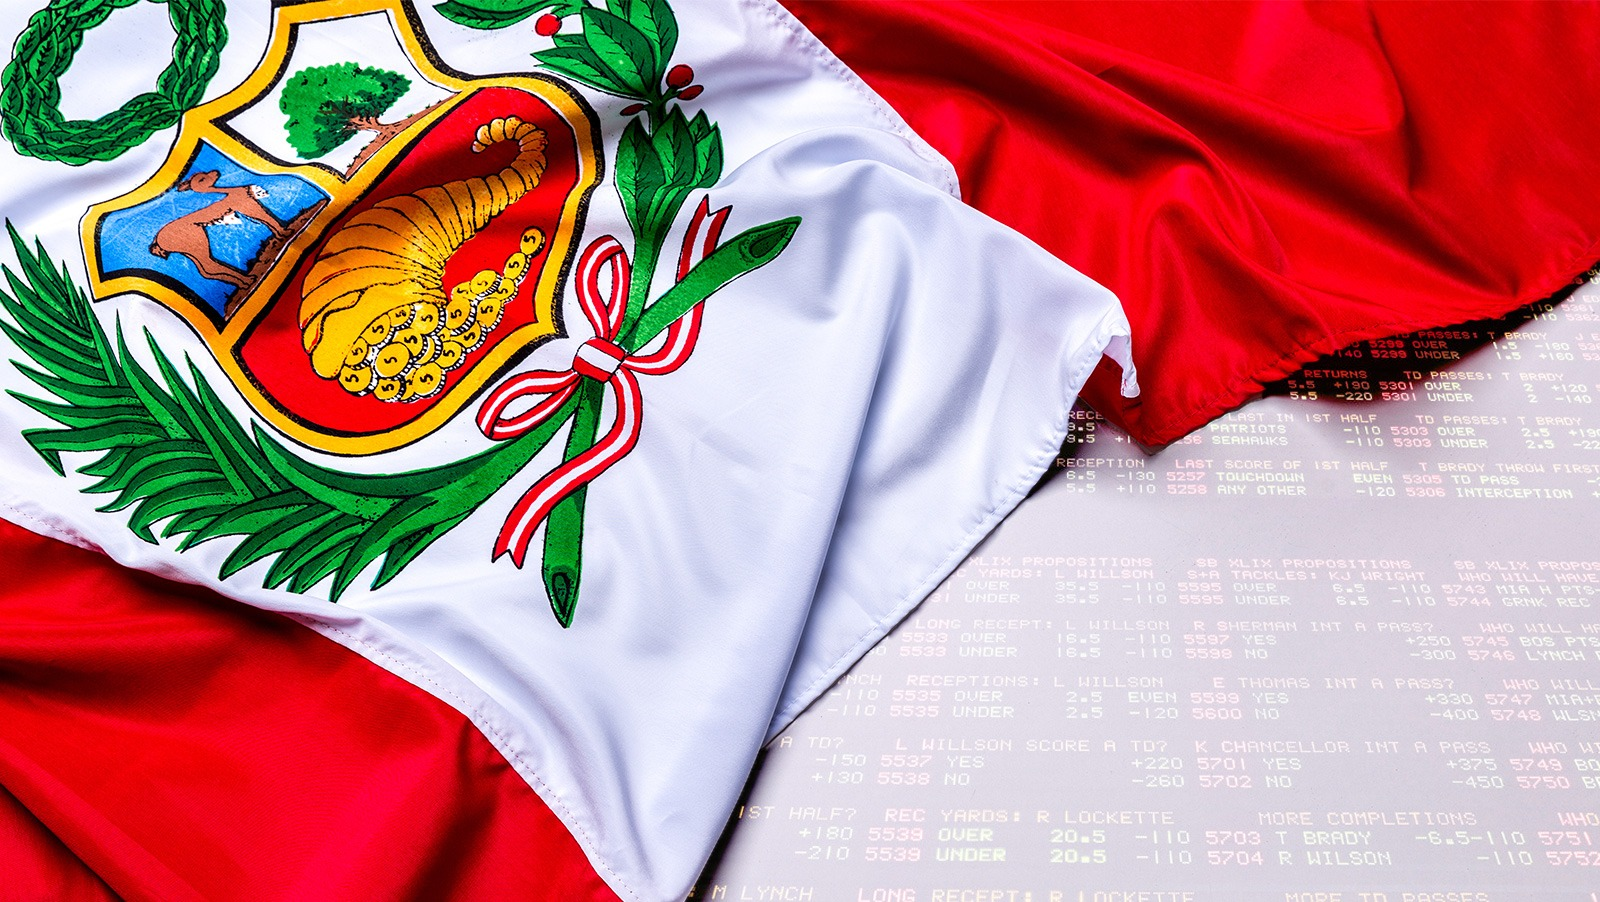 Peru could soon see legalized sports gambling